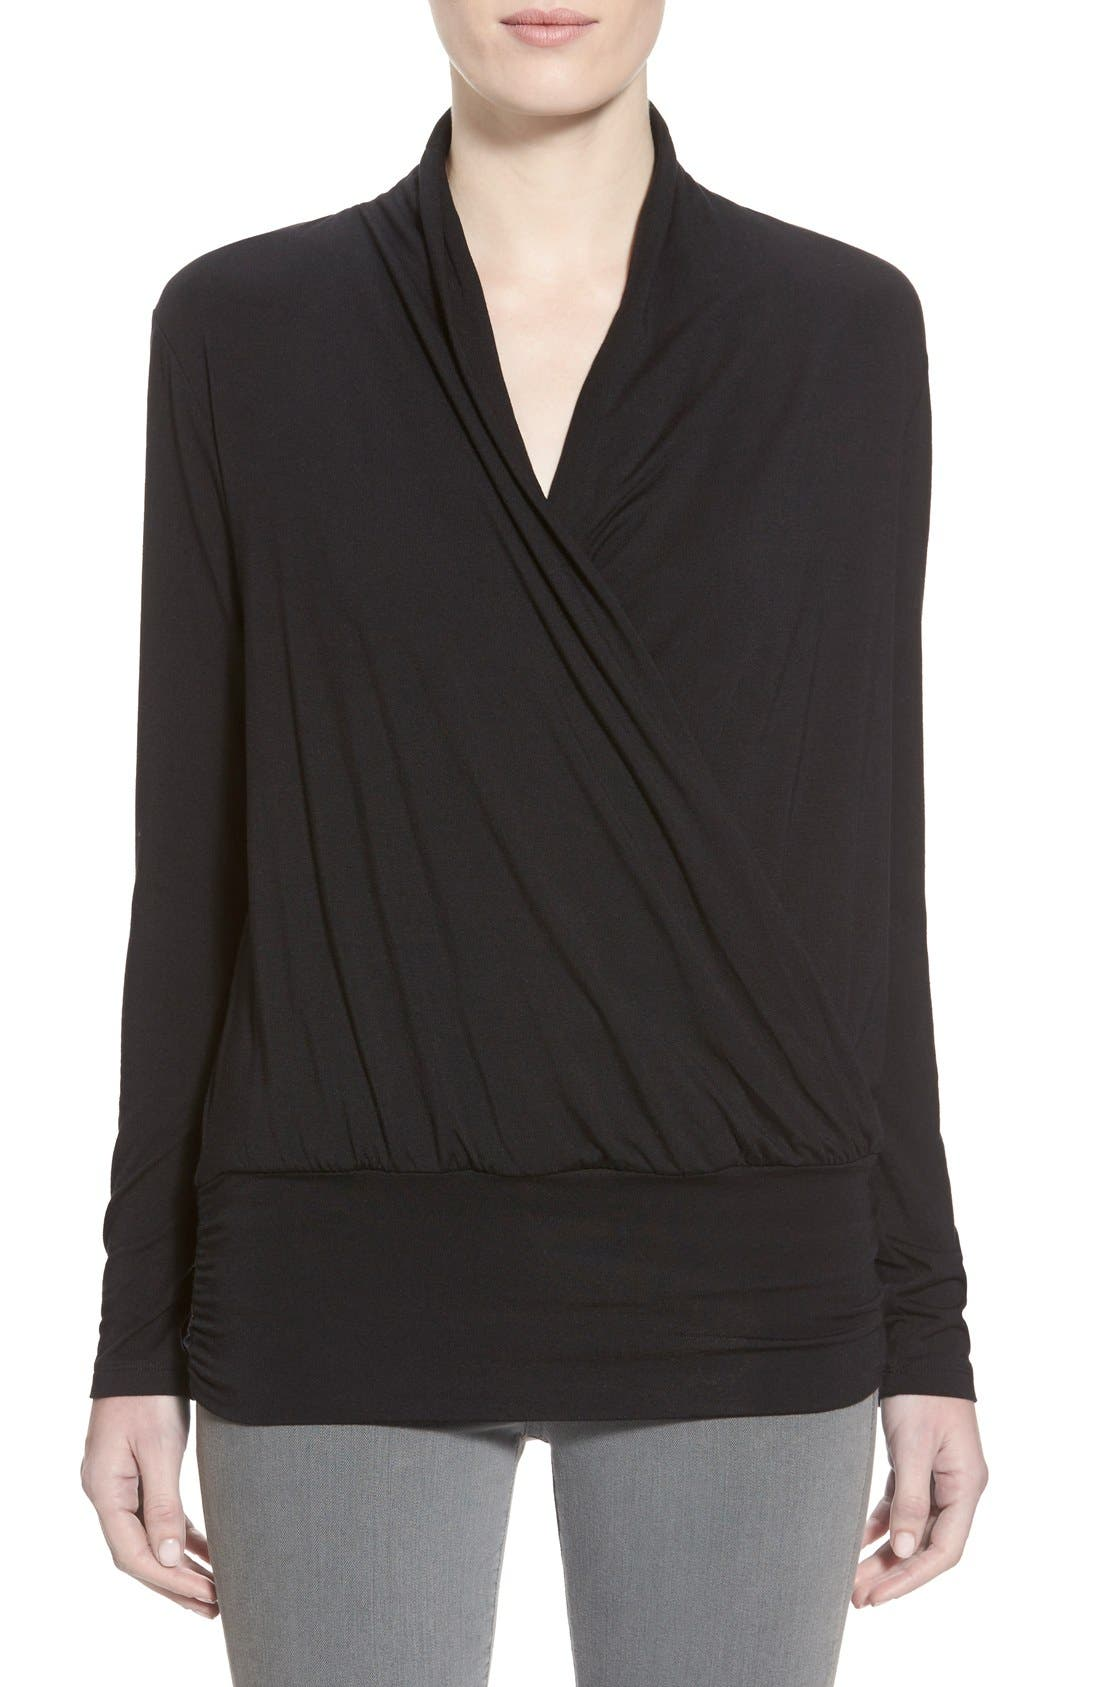 Amour Vert'Angela' Long Sleeve Wrap Front Top